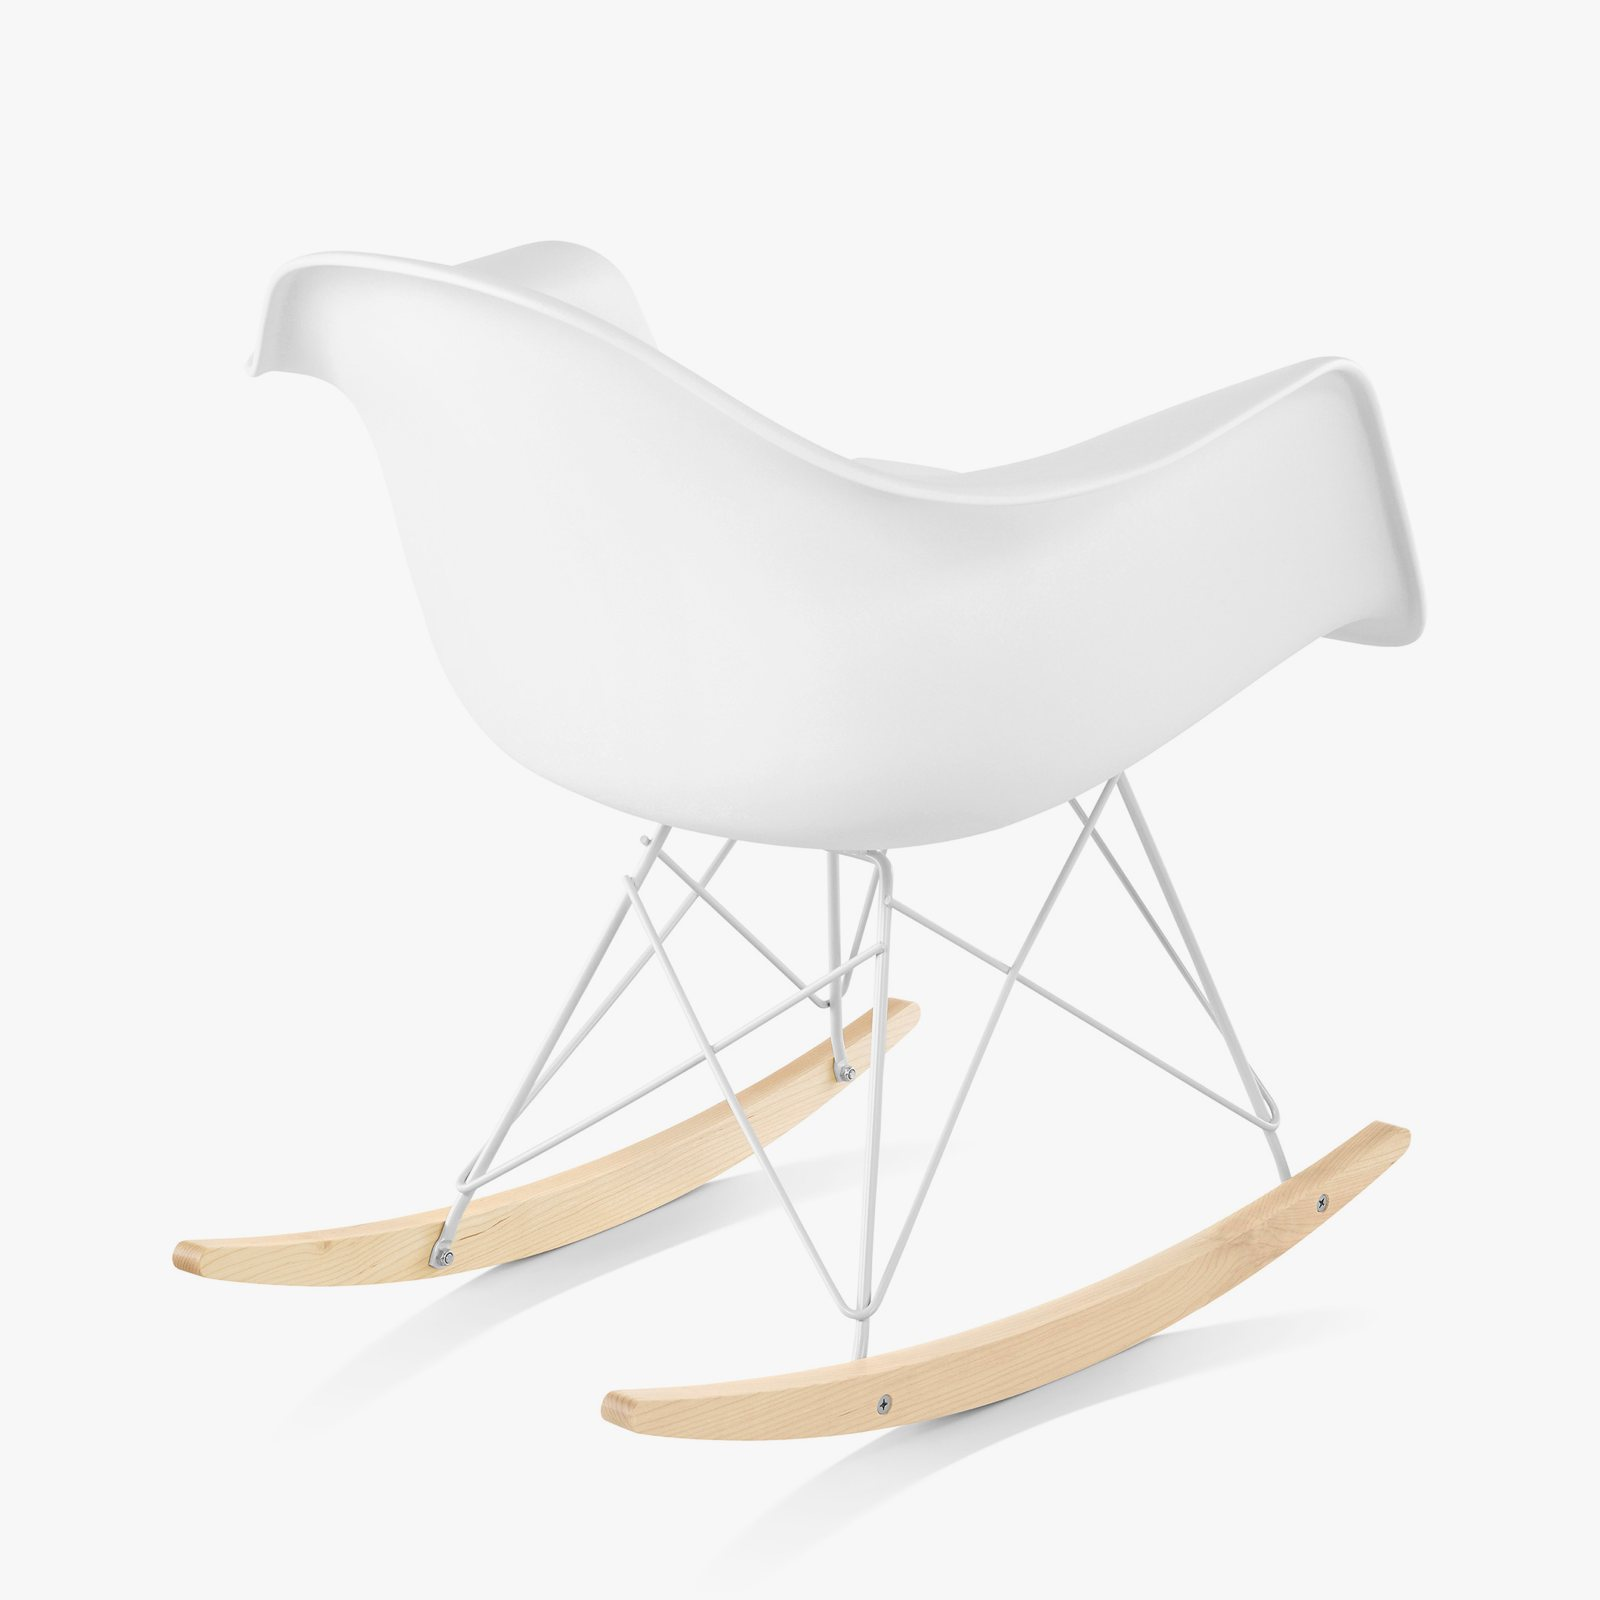 Eames Molded Plastic Armchair Rocker Base, White, Back View.